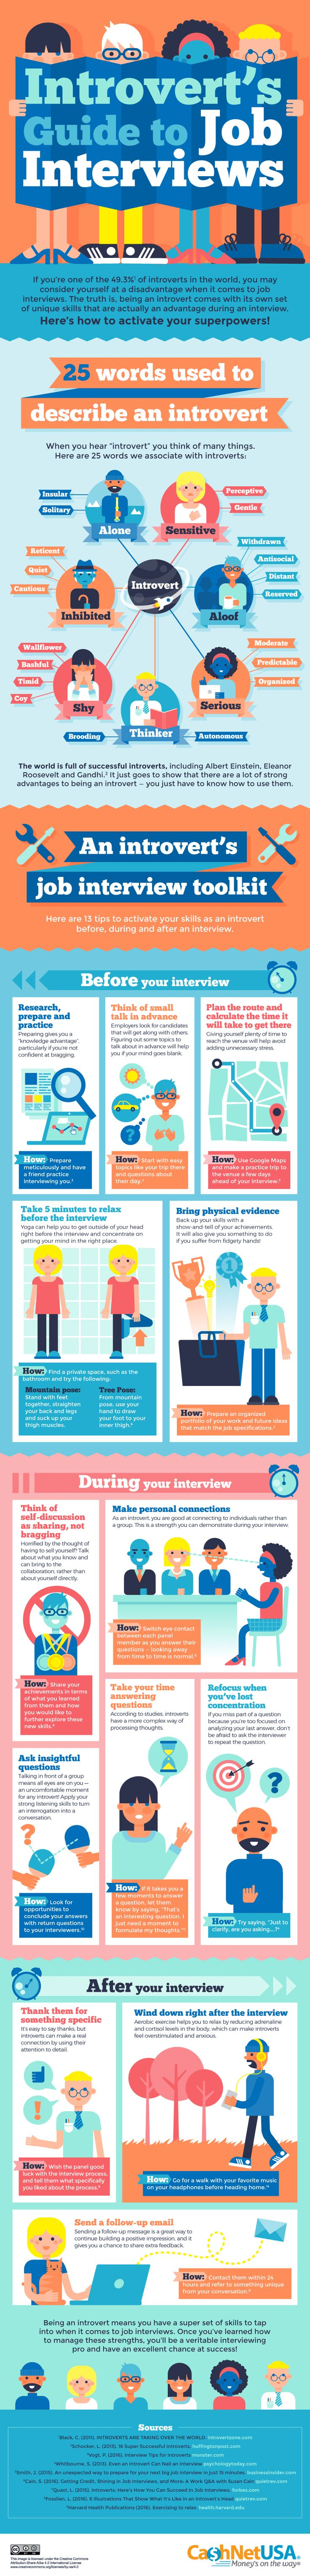 Introvert's Guide To Job Interviews #Infographic #Career #Interview